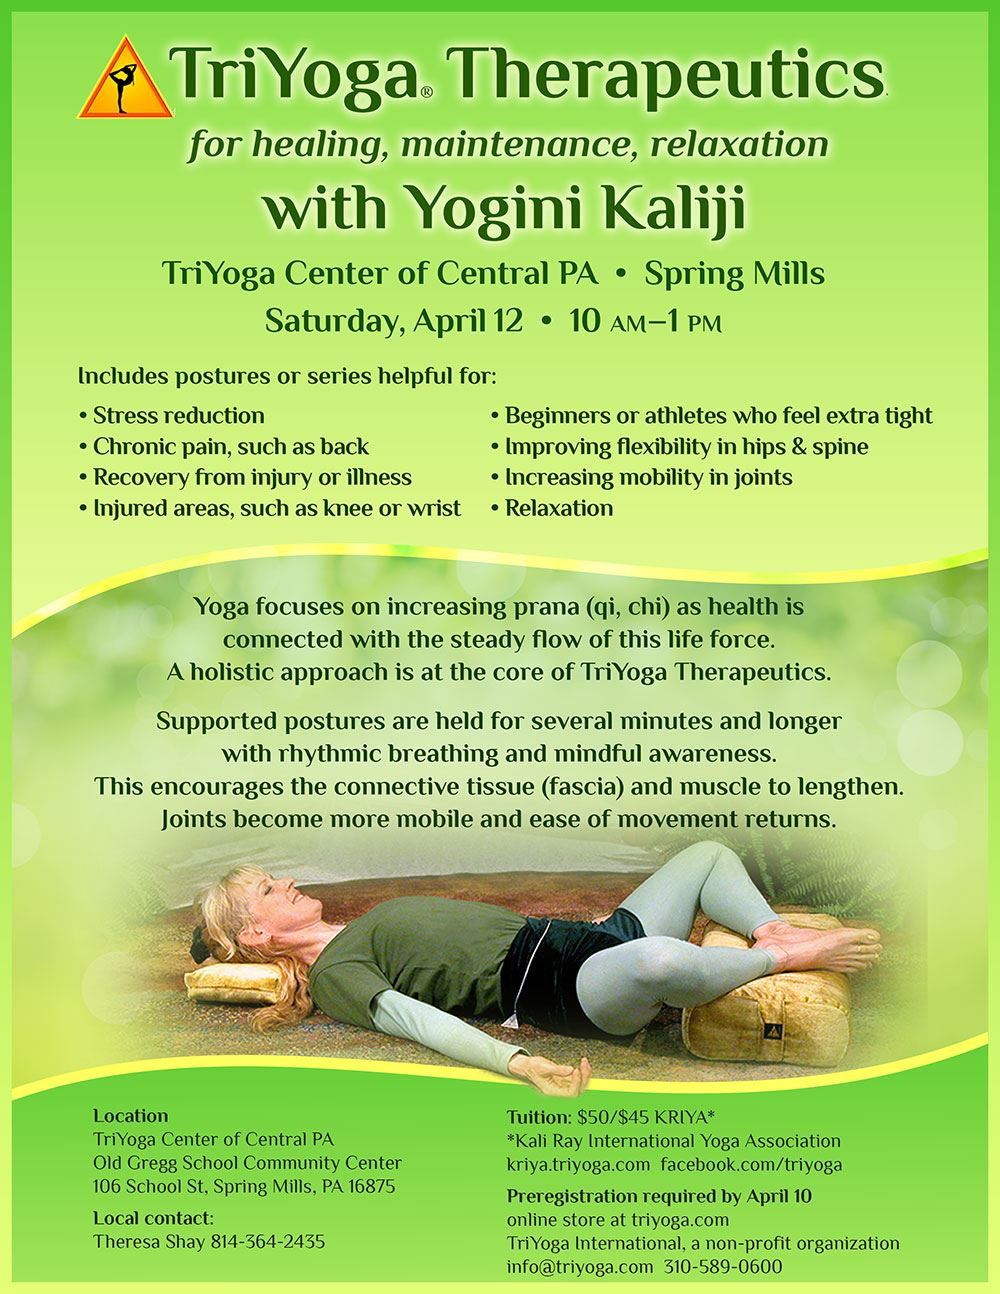 TriYoga with Yogini Kaliji in State College, PA